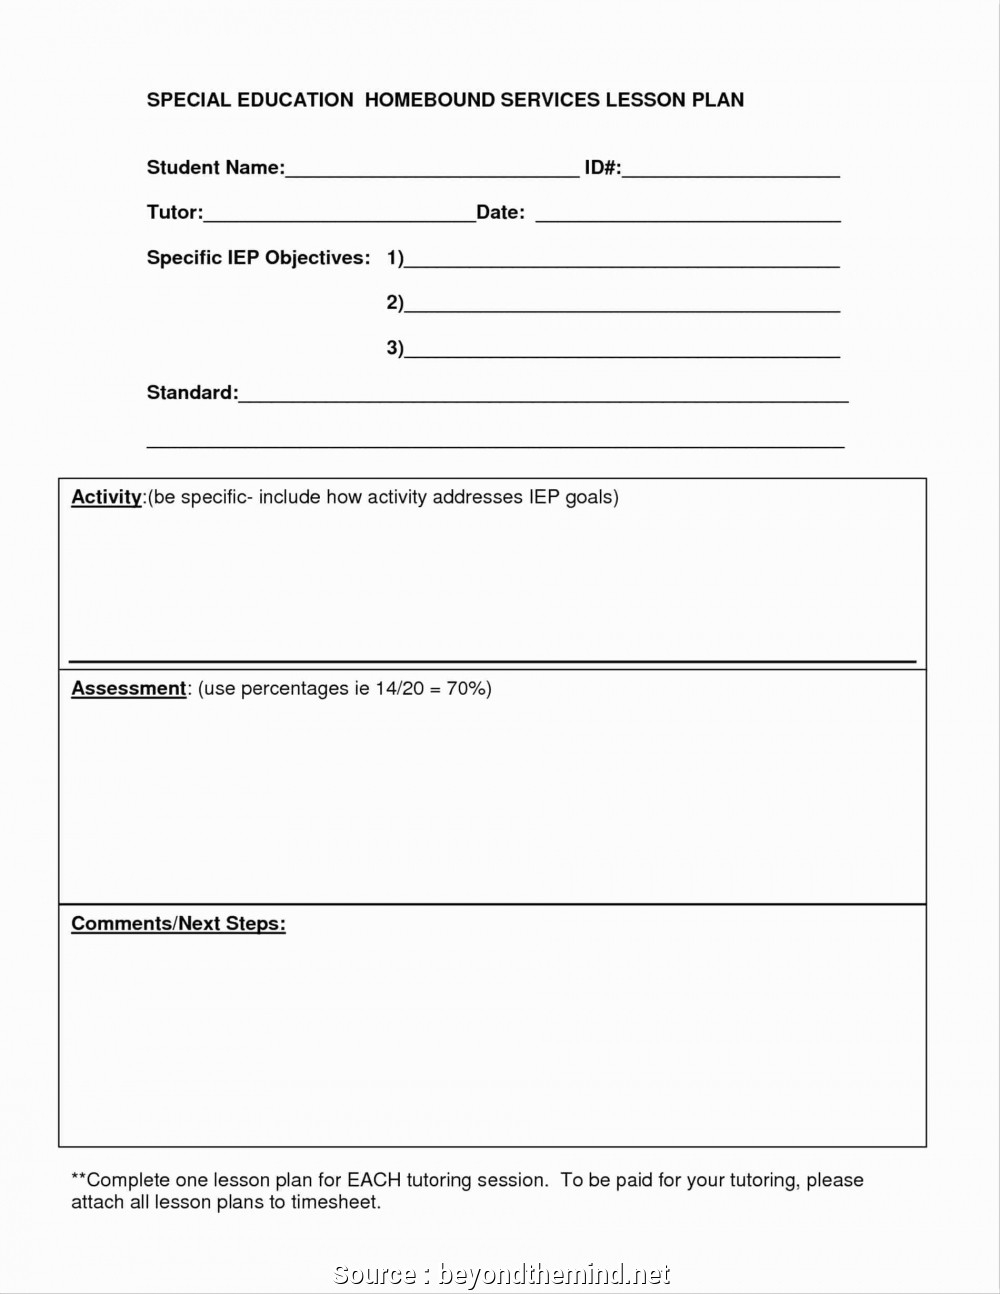 035 Plan Templates Tutor Lesson Template Examples High School for Tutoring Template To Fill Out Weekly